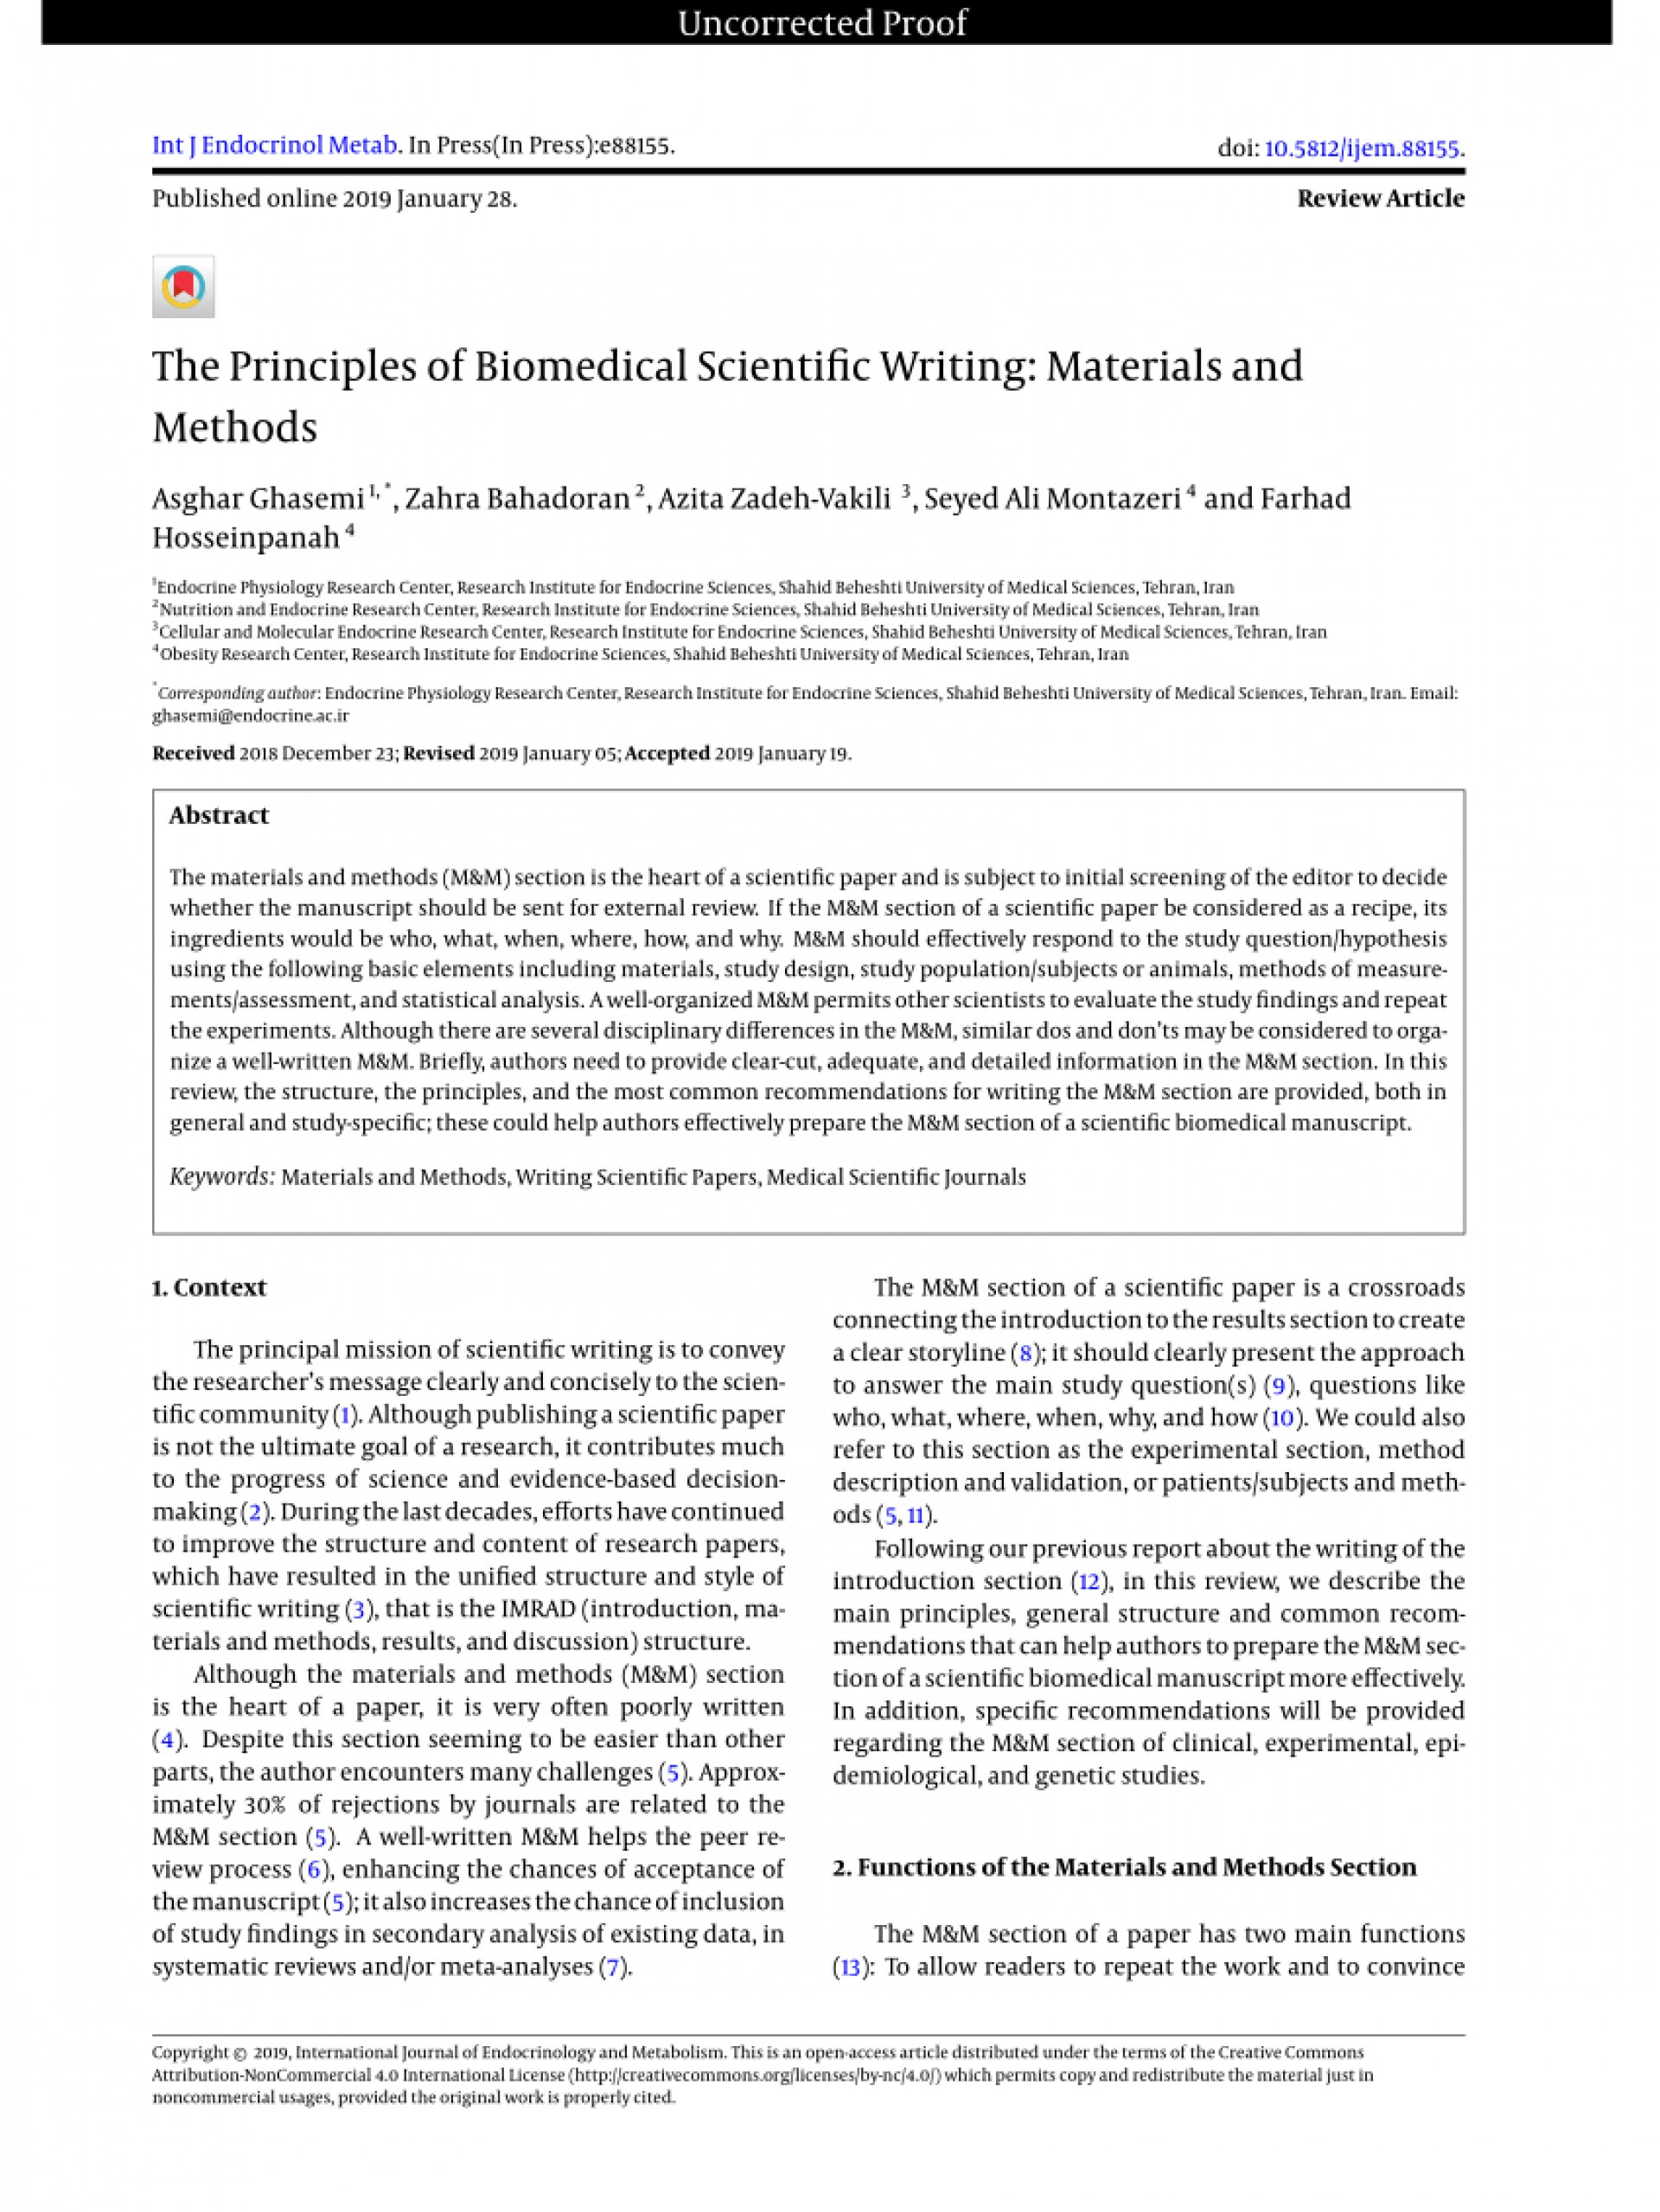 001 Research Paper Largepreview How To Write Materialsnd Methods In Excellent Materials And A Example 1920